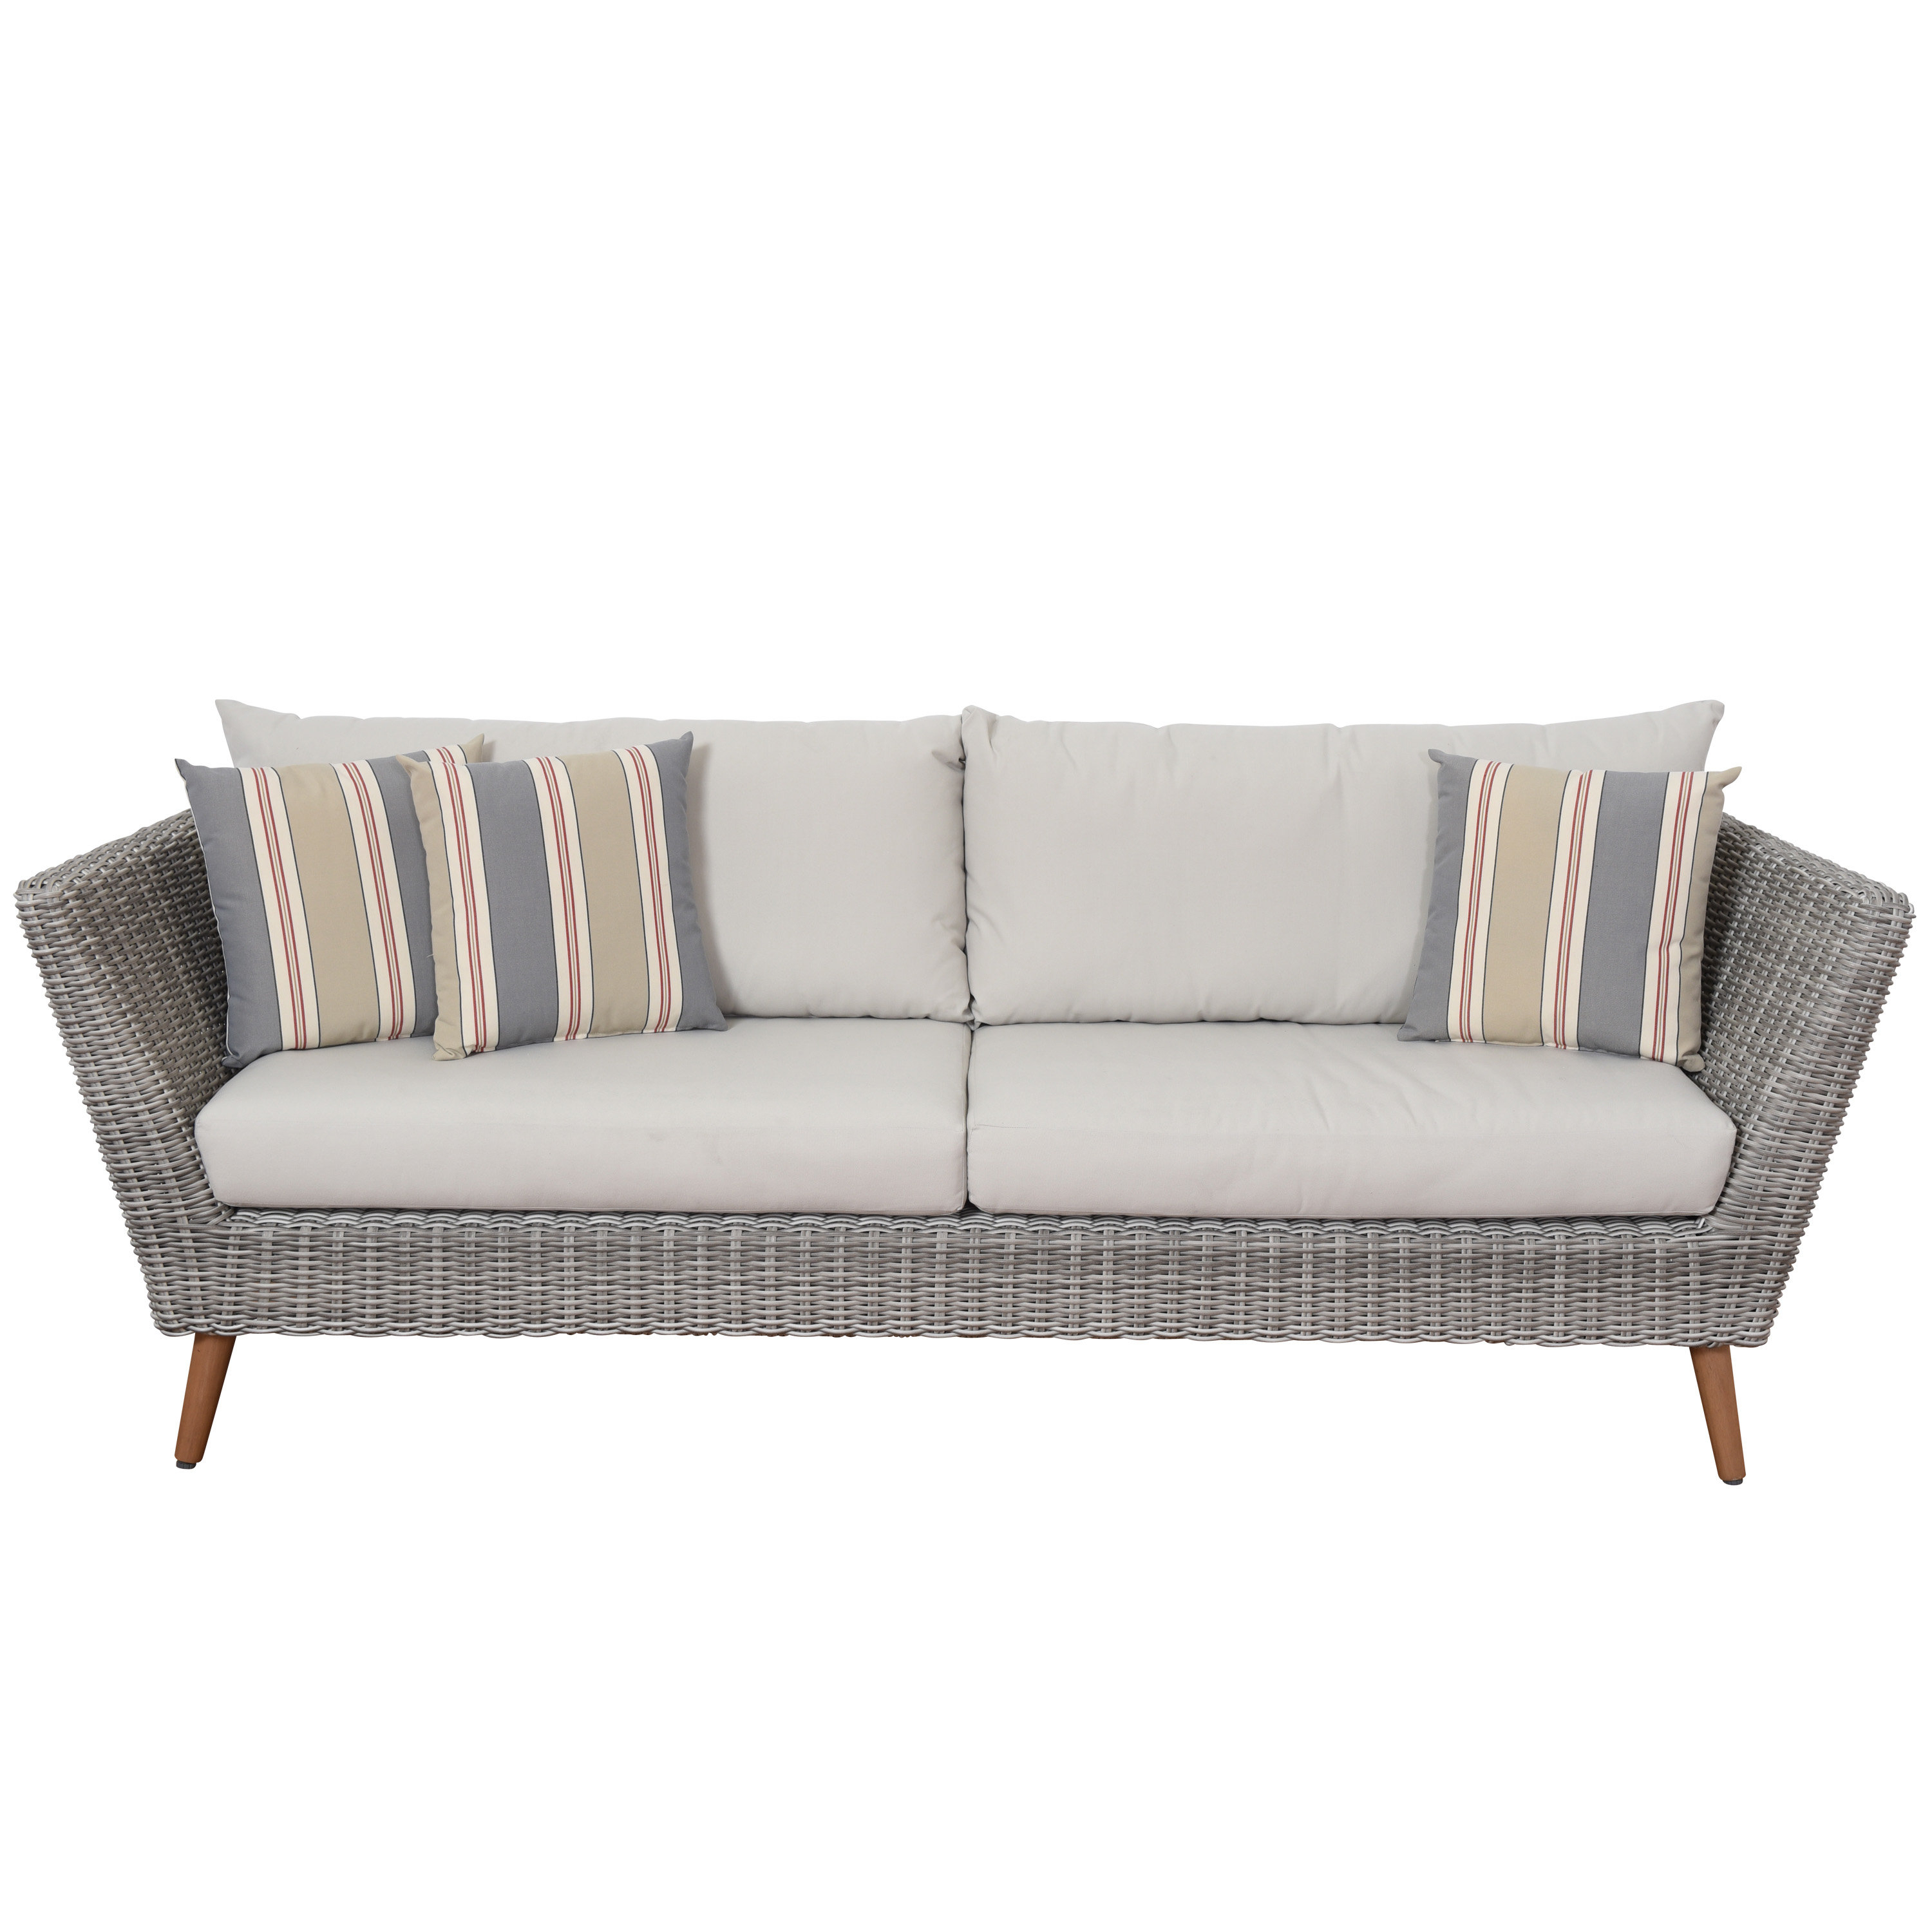 Camak Patio Sofas With Cushions With Regard To Most Recent Newbury Patio Sofa With Cushions (View 13 of 20)